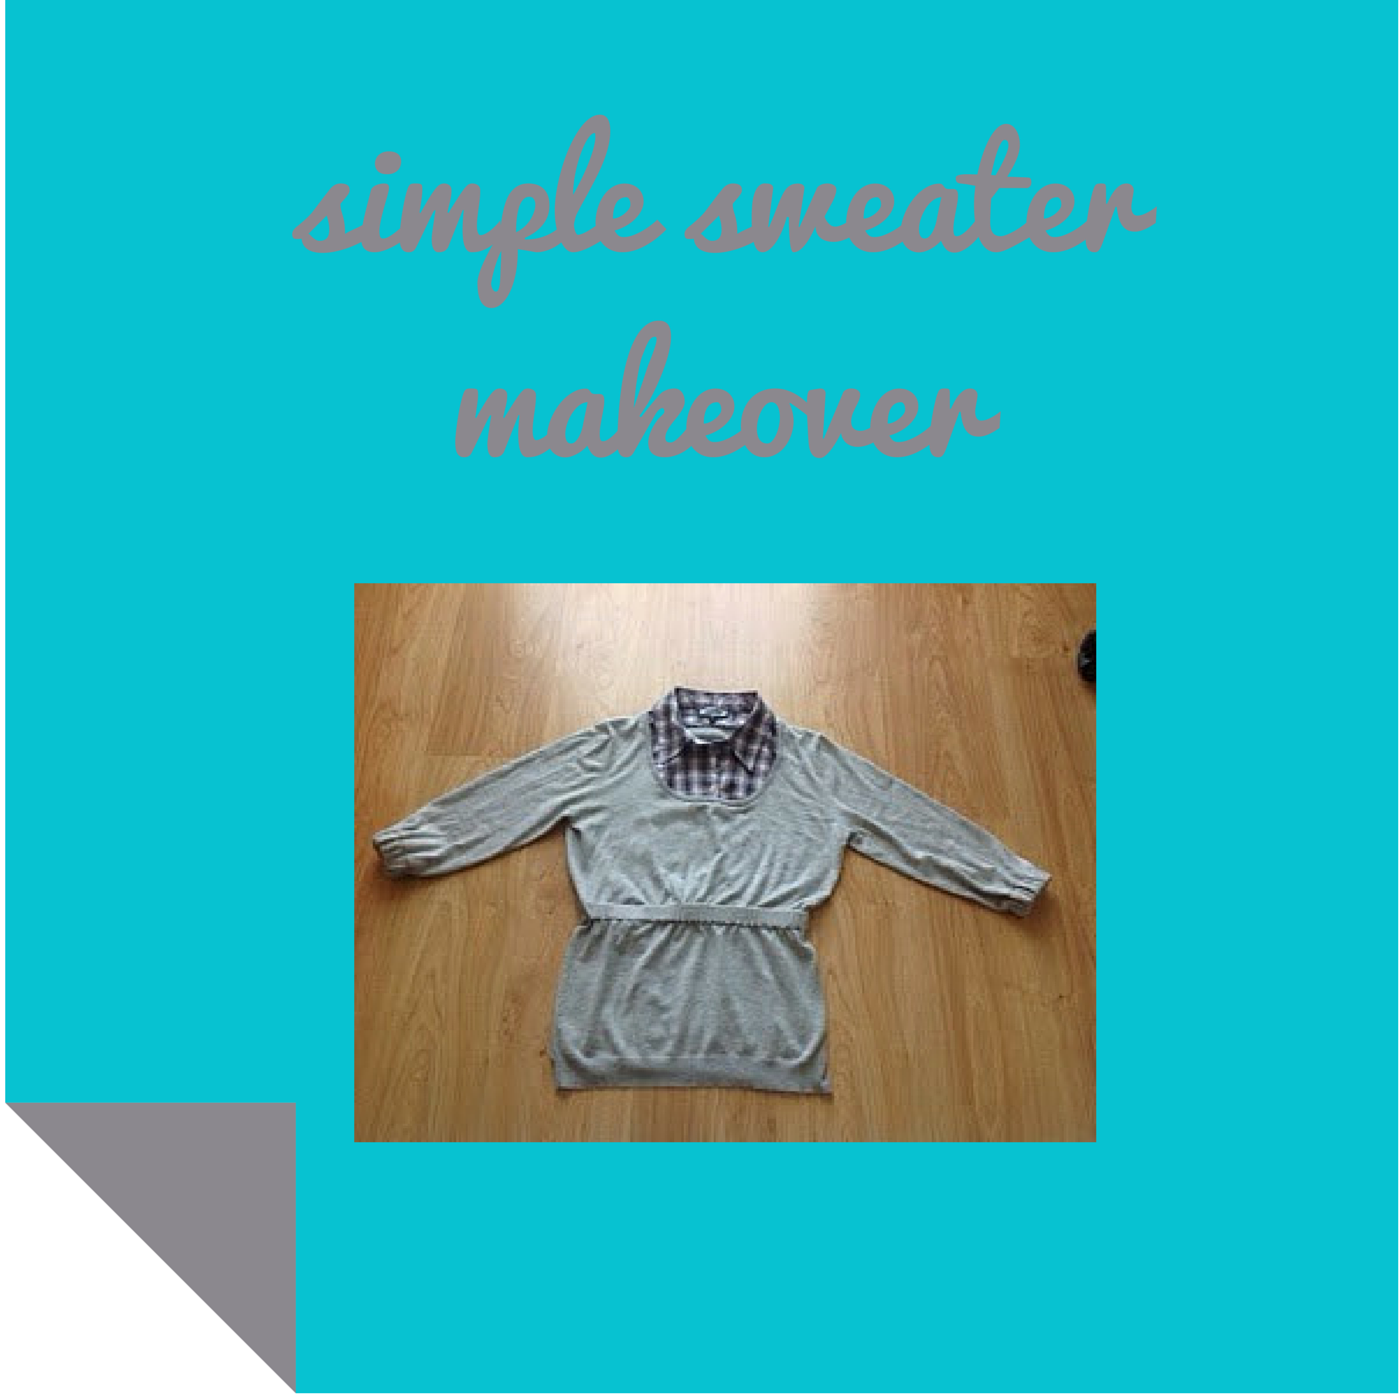 http://keepingitrreal.blogspot.com.es/2015/01/reuse-upcycle-simple-sweater-makeover.html